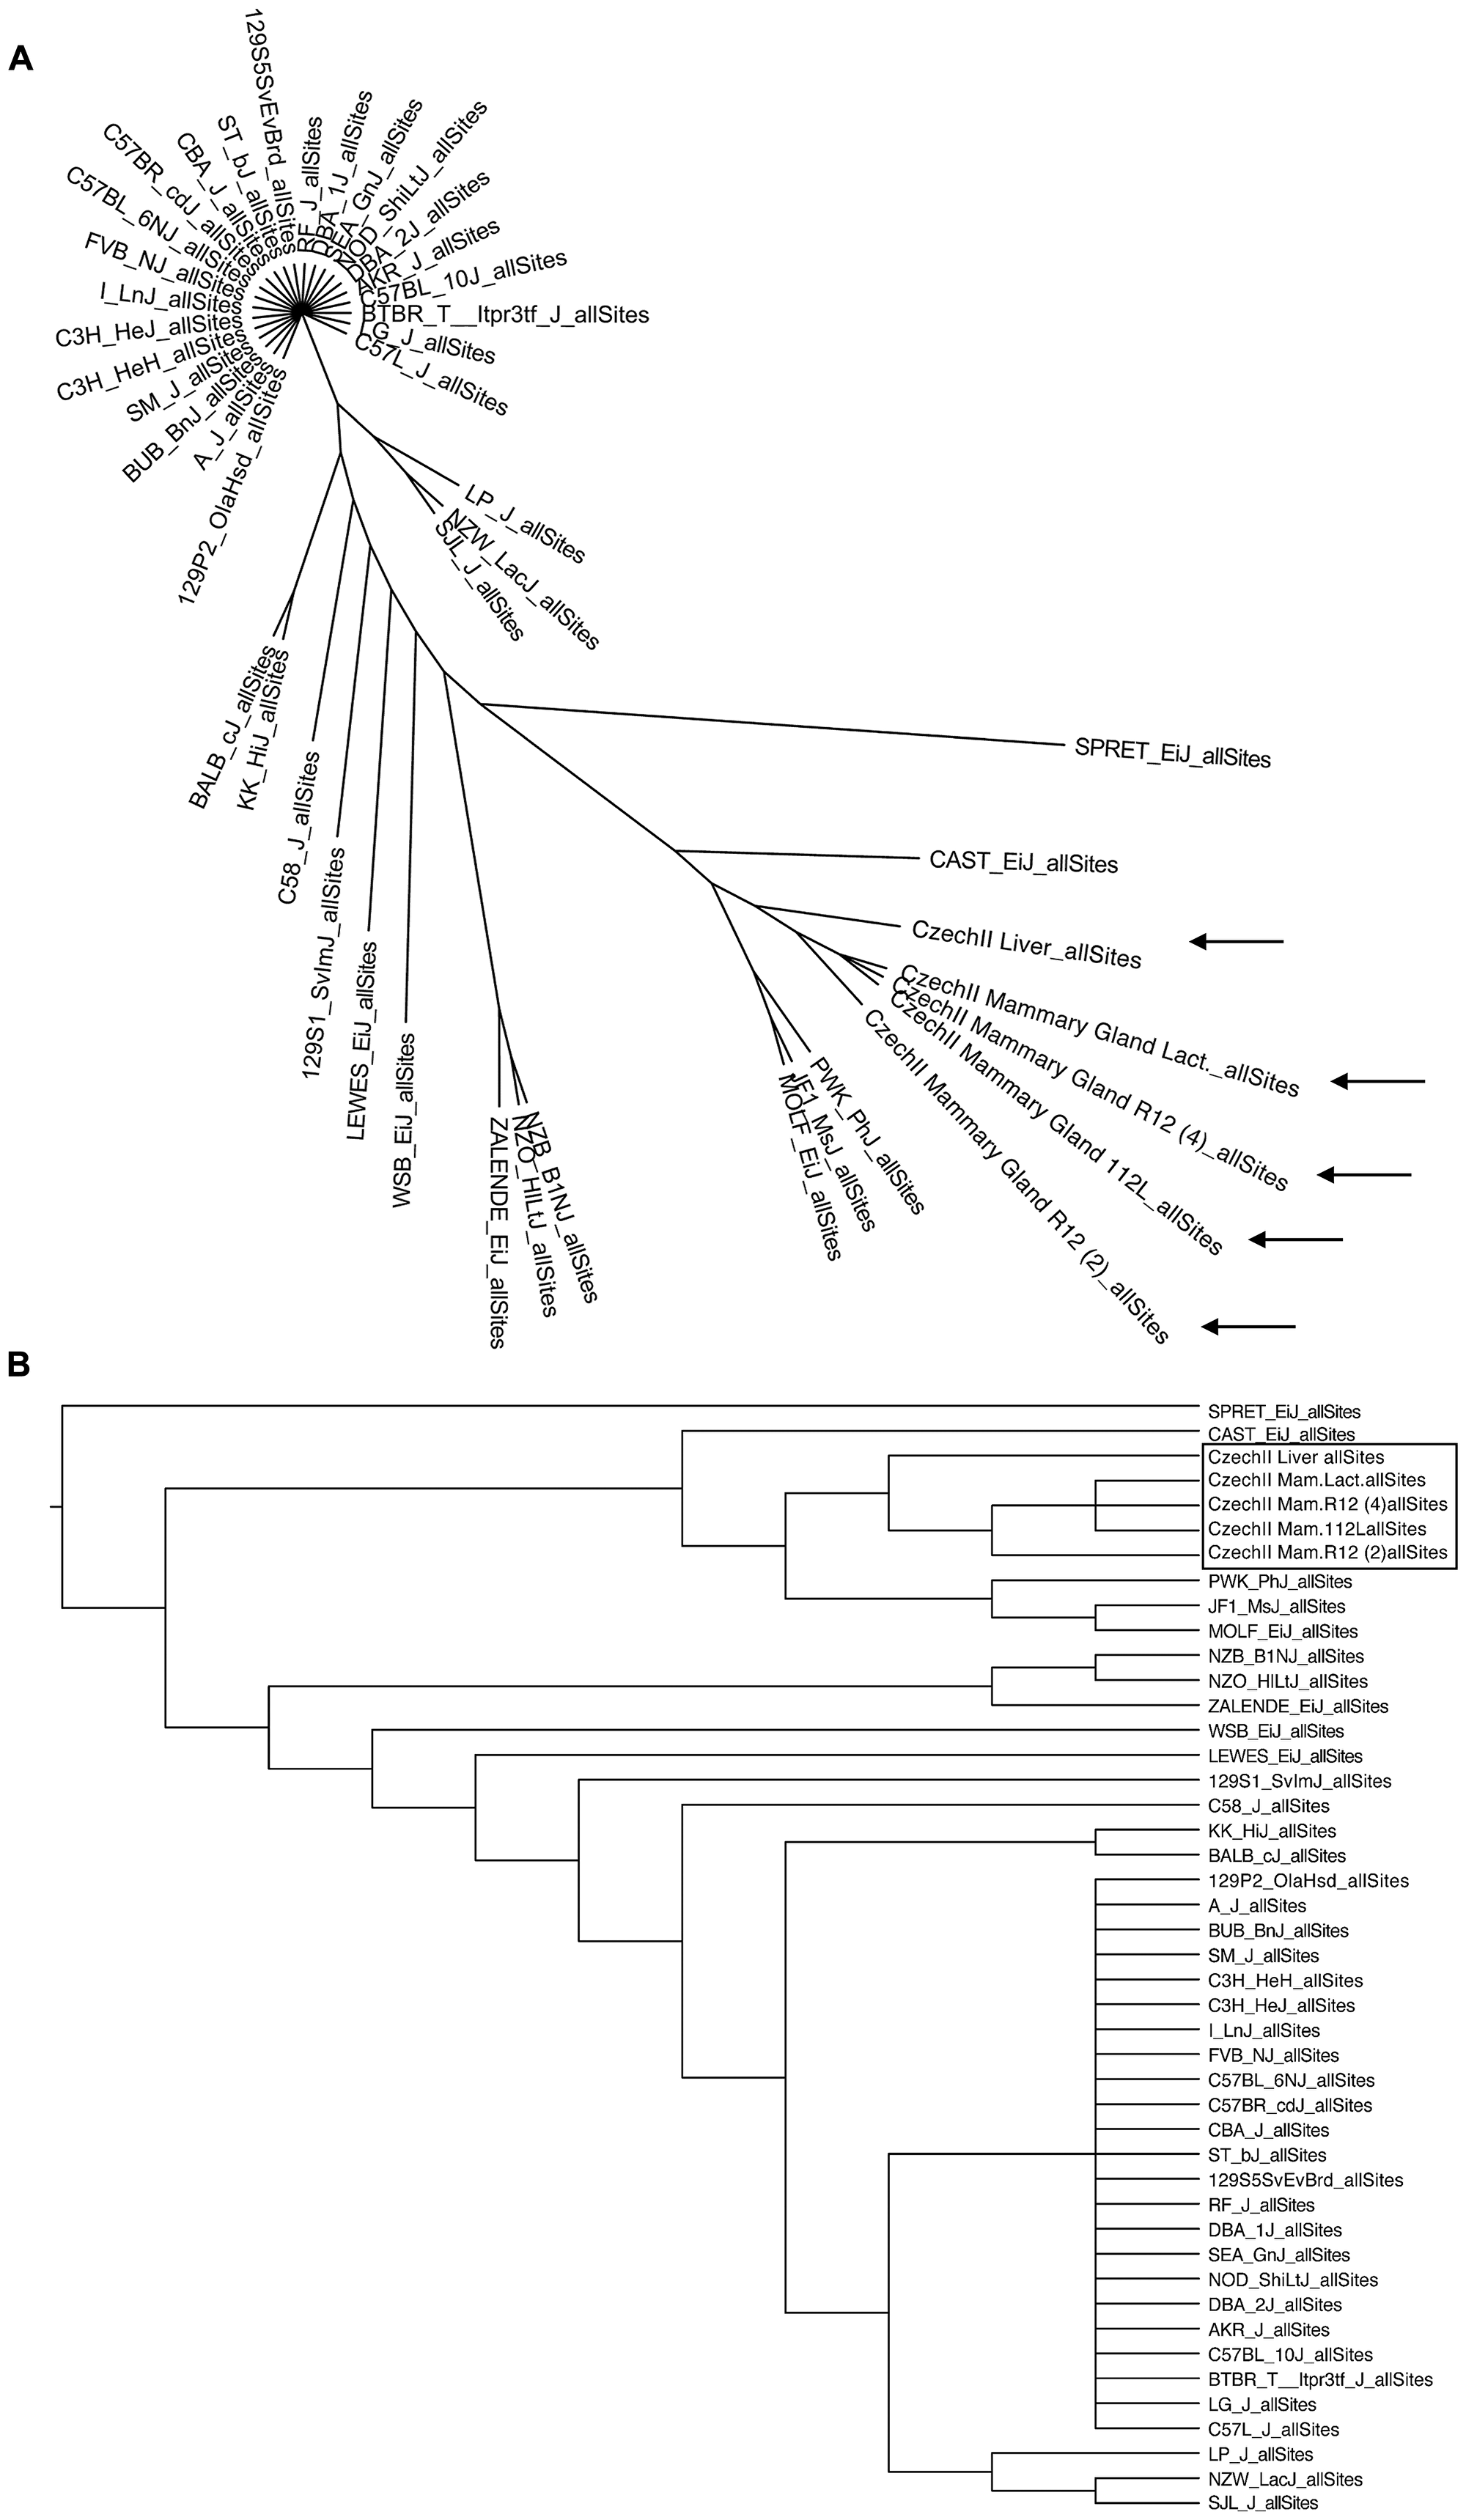 Phylogenetic mapping of CzechII mouse strain.